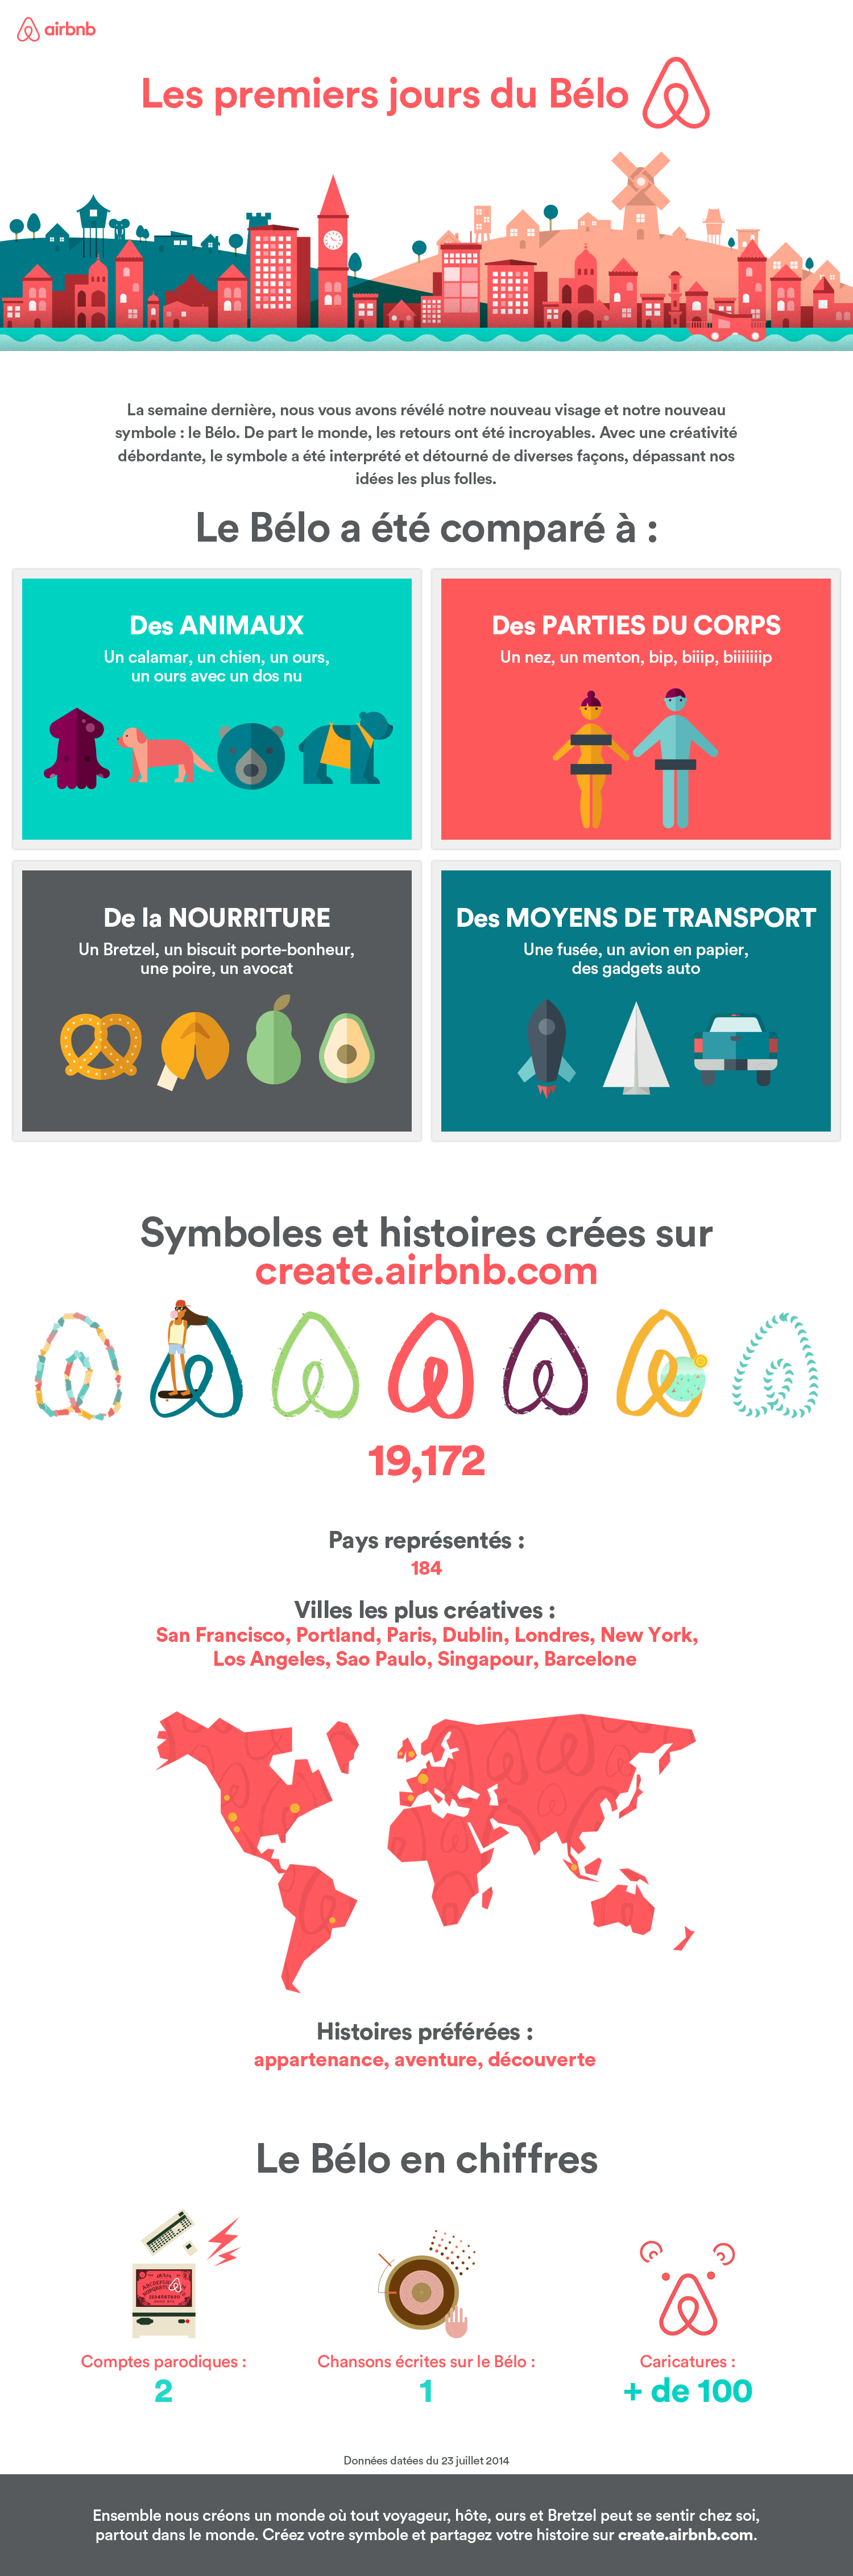 Airbnb_Belo_infographic_French_140728